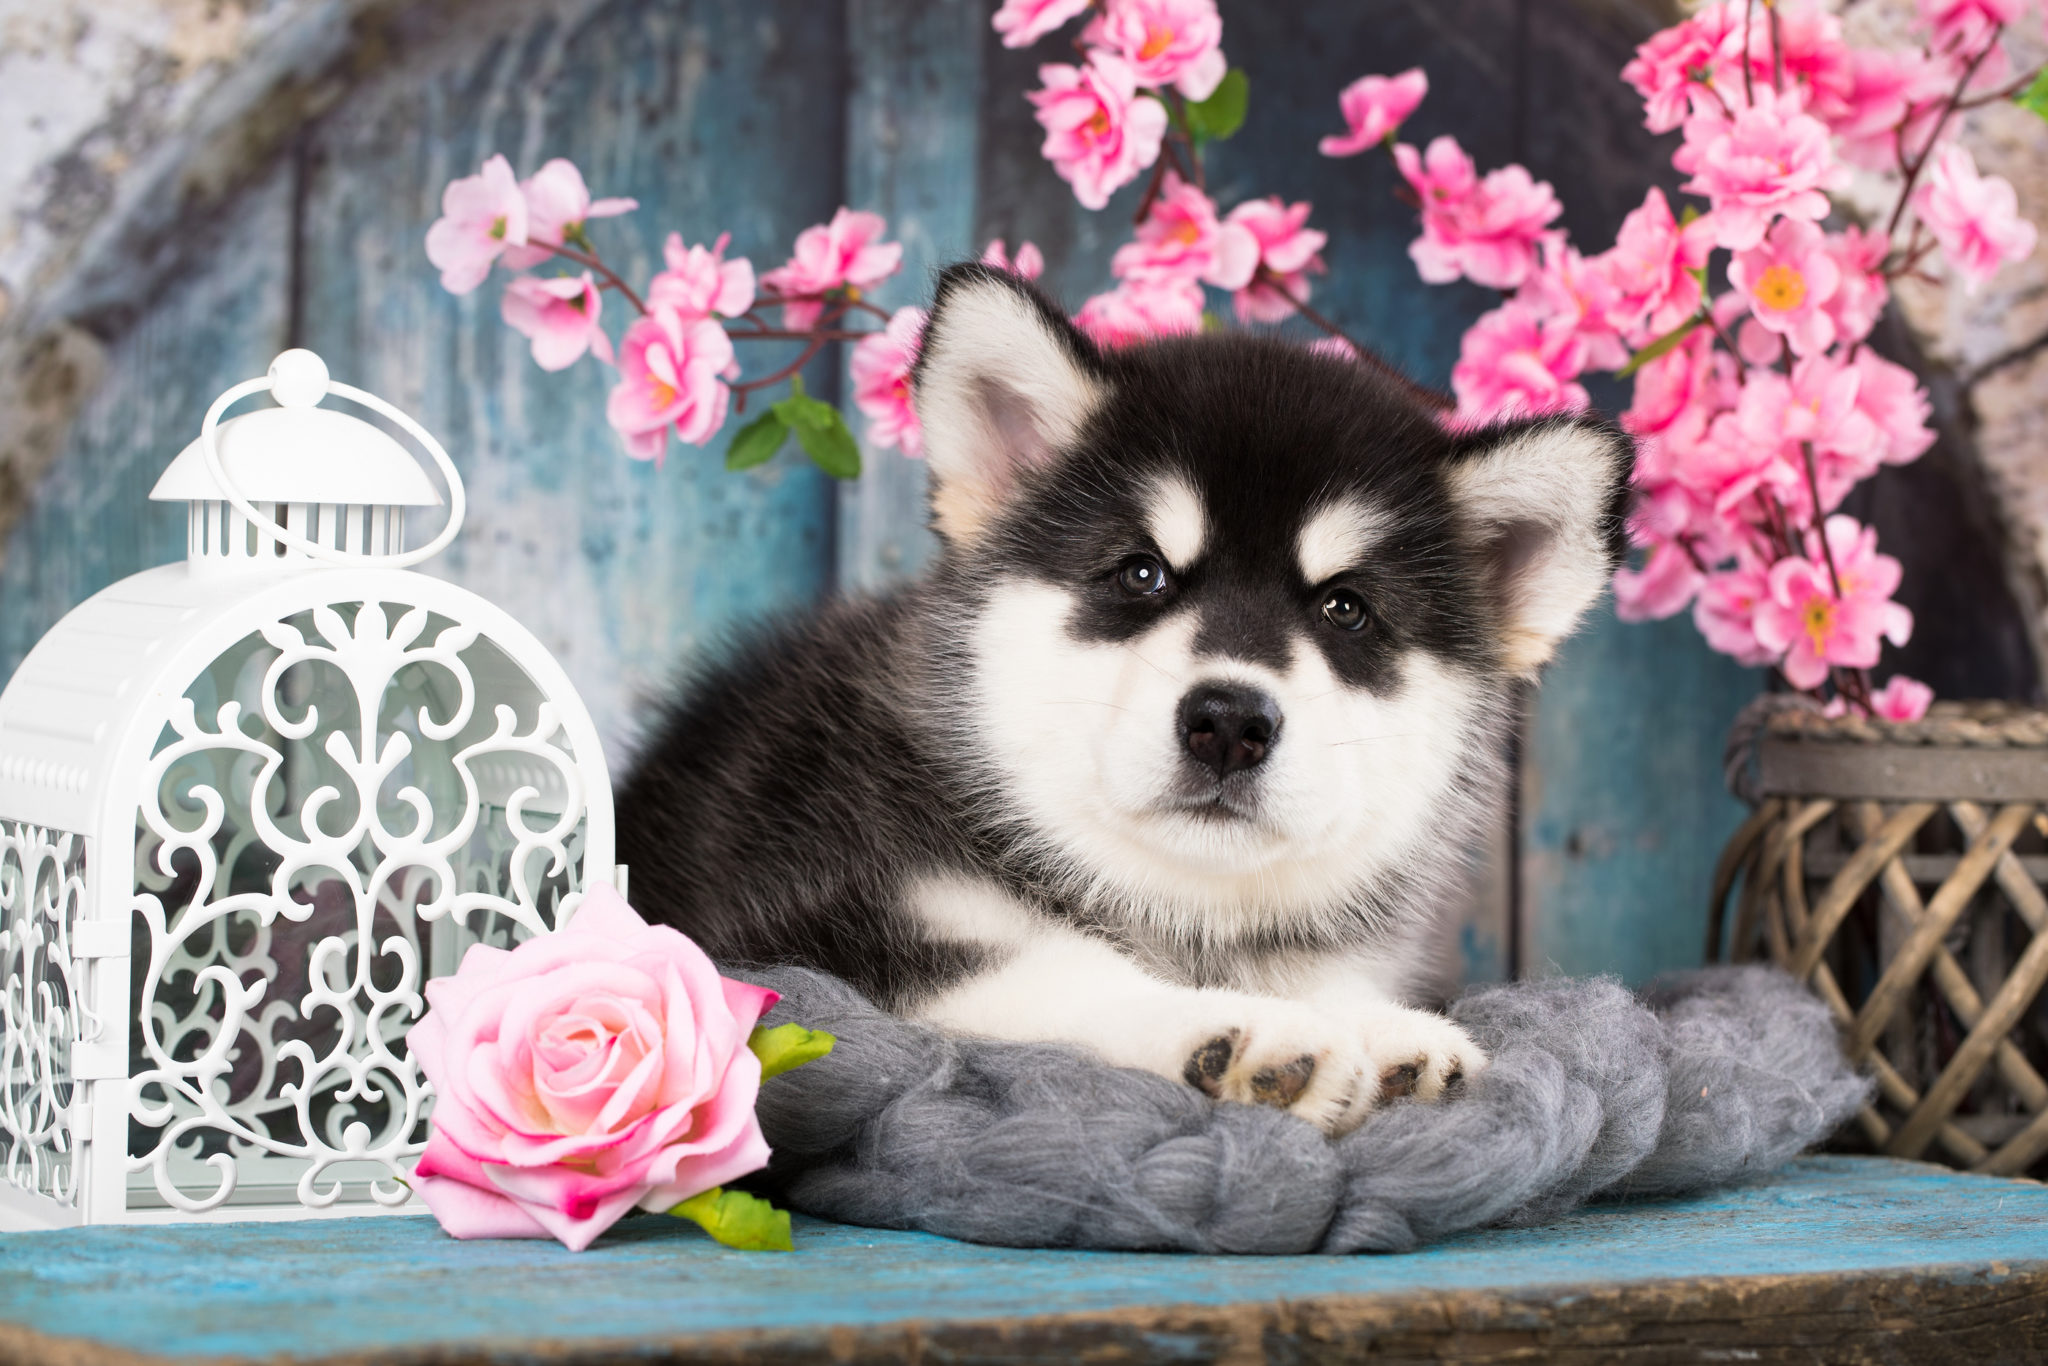 Alaskan Malamute puppy; black and white puppy with long fluffy h